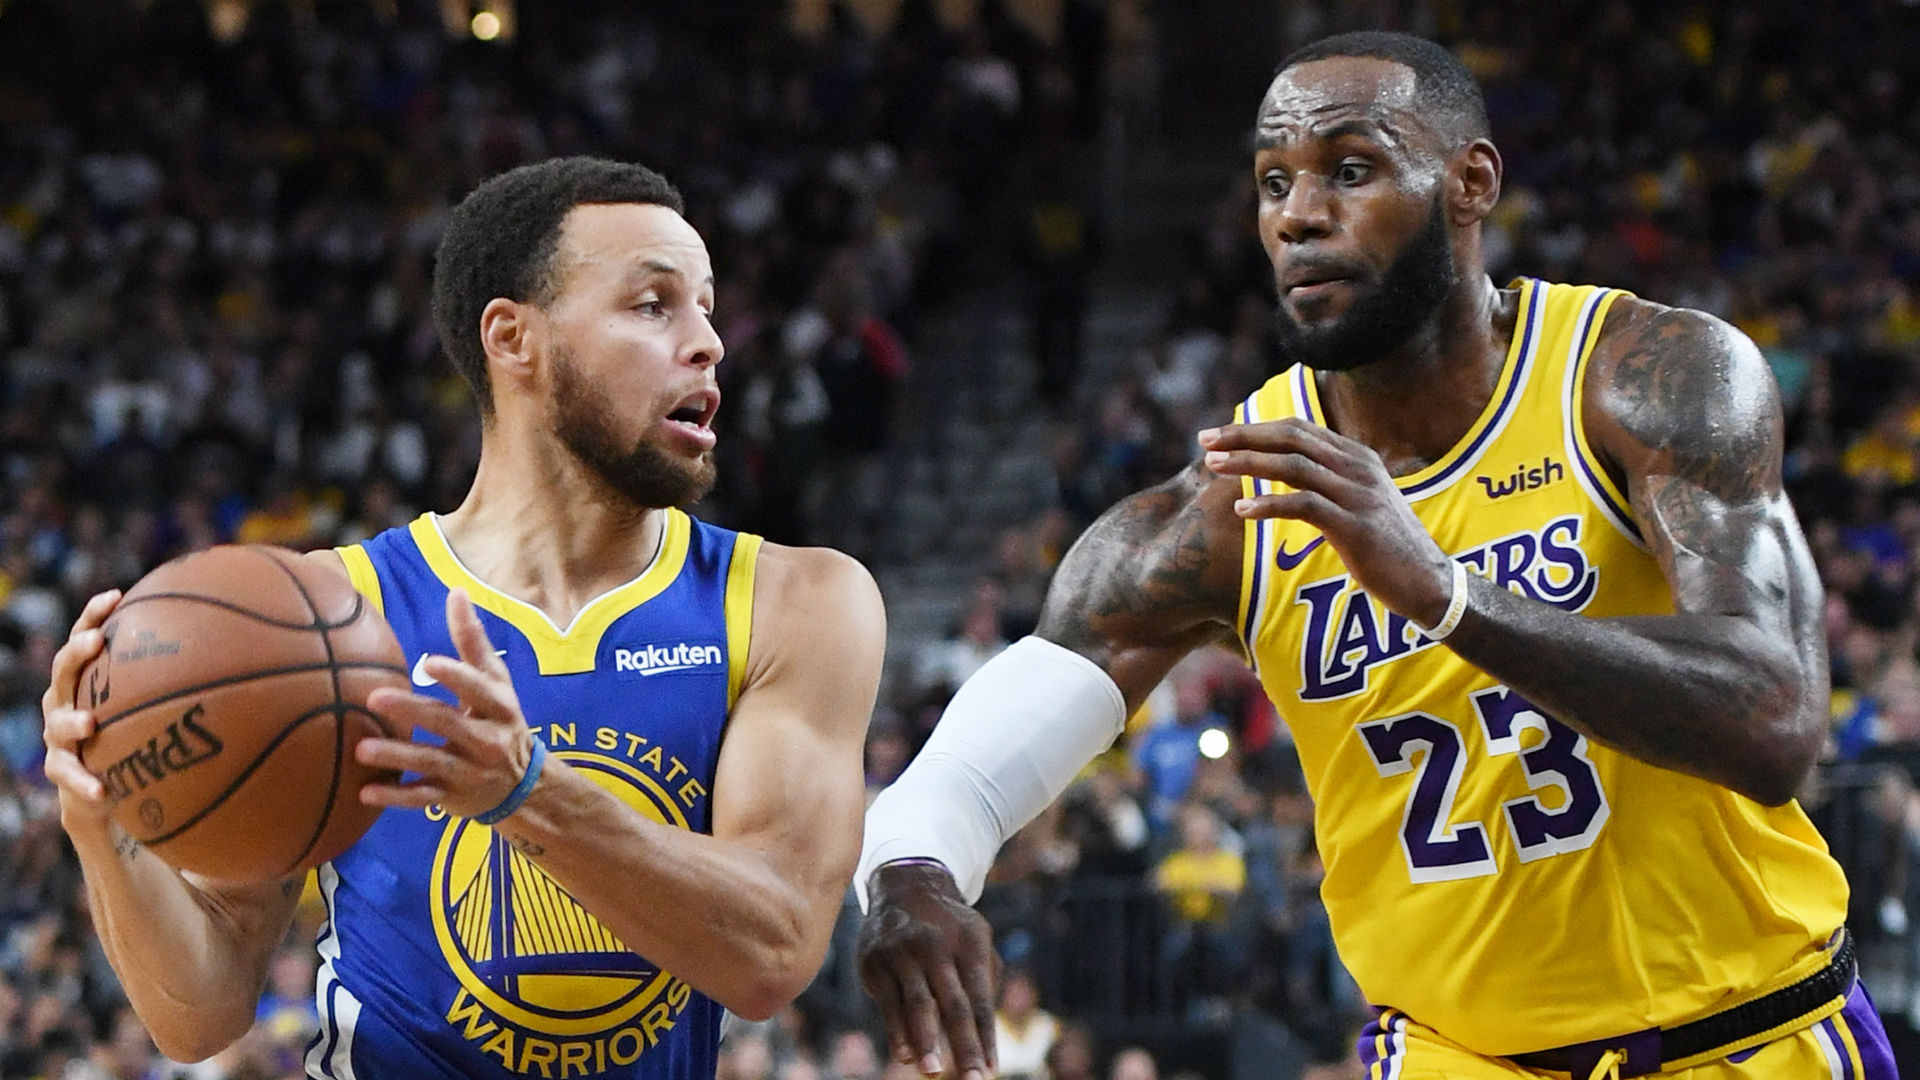 Nba Christmas.Nba Christmas Games 2018 Full Schedule Tipoff Times How